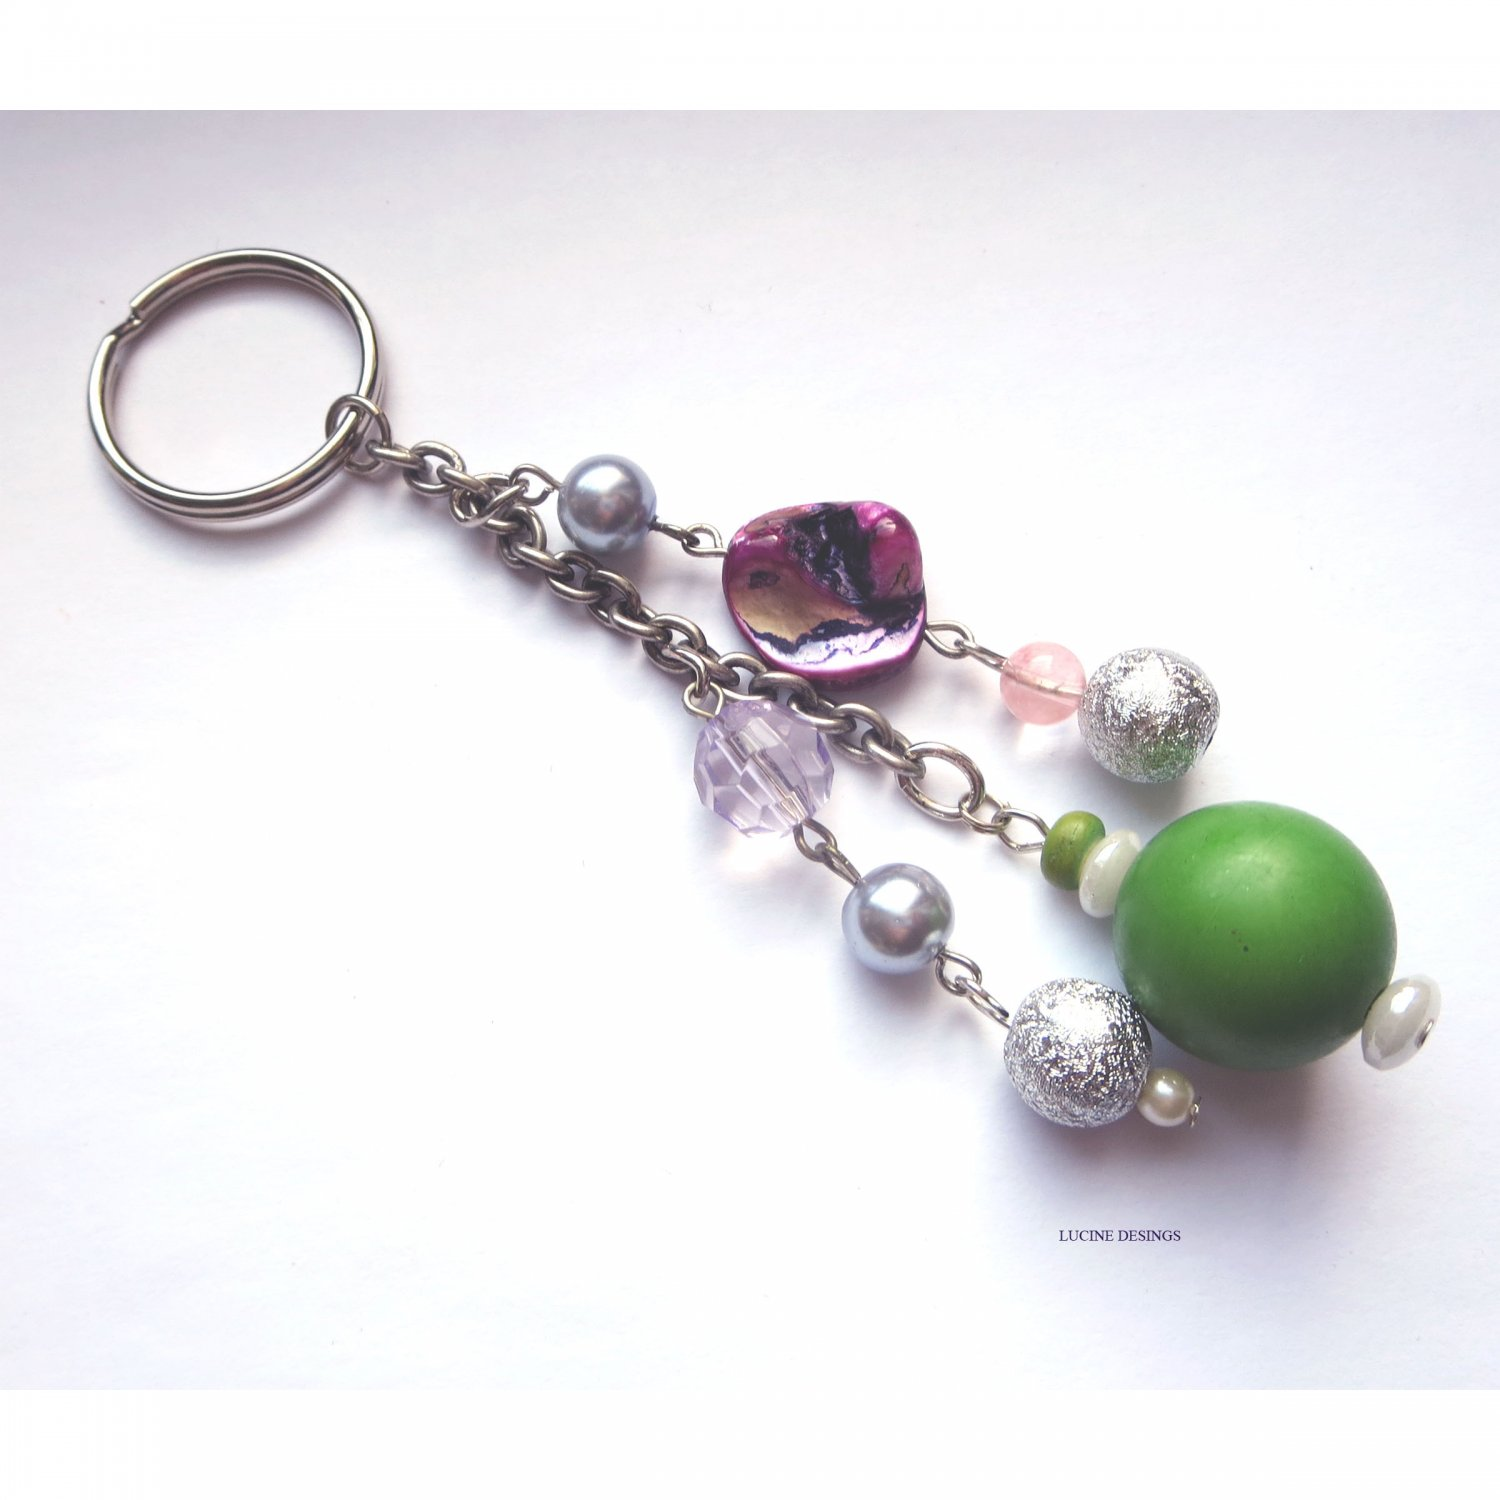 OOAK fashion keychain accessory purple green mop by Lucine Designs